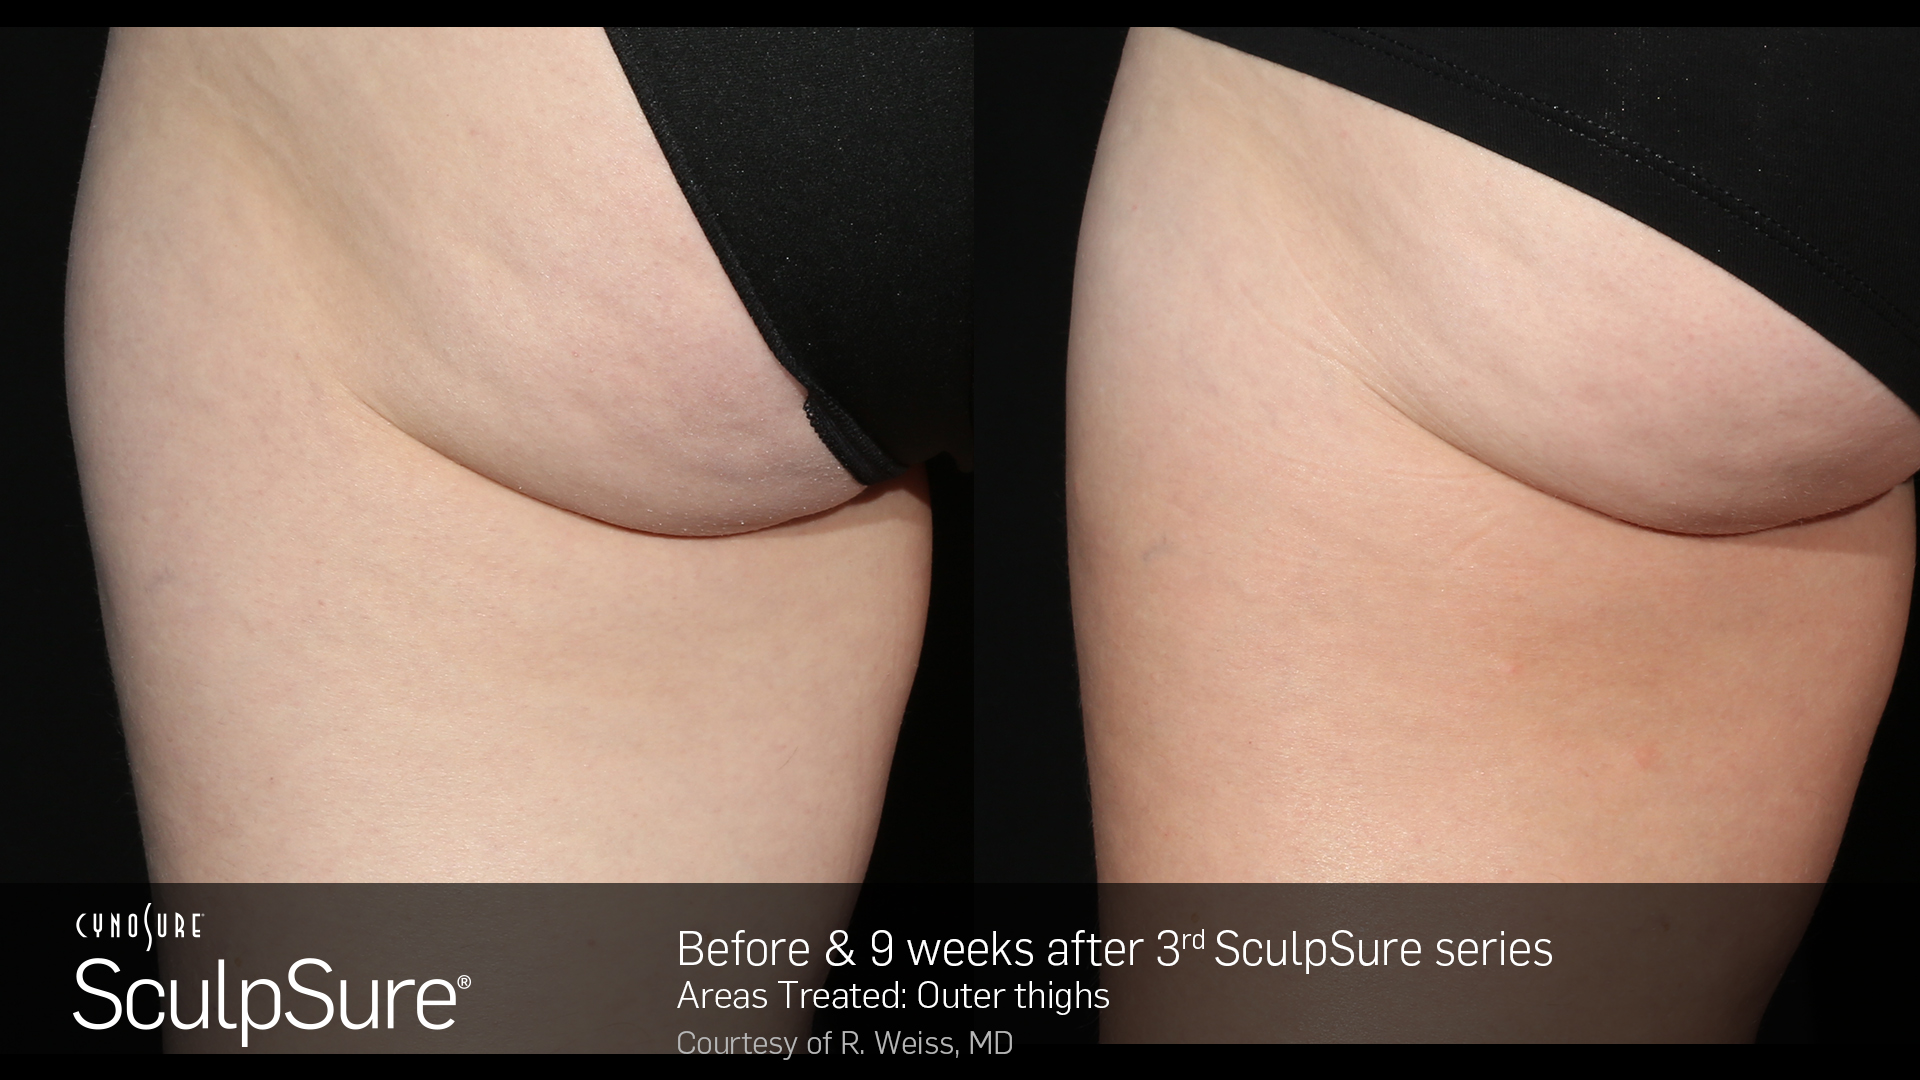 BA_SculpSure_R.Weiss_OuterThigh_3tx_9weeks (1)